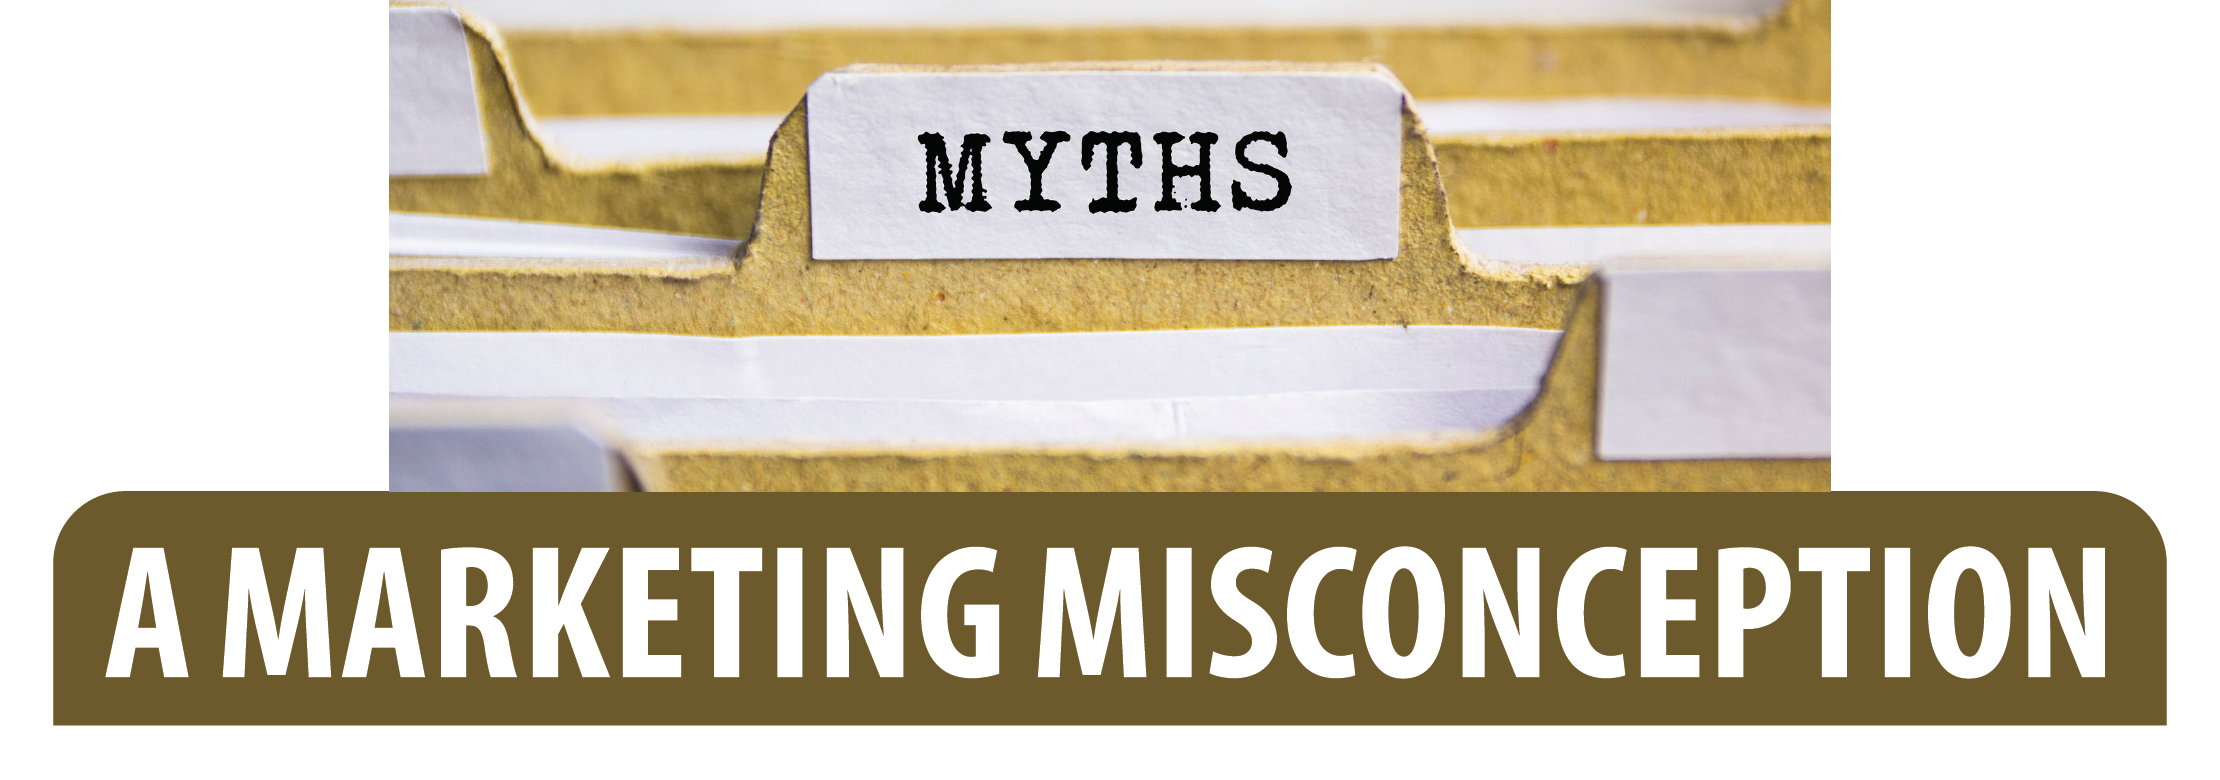 You are currently viewing A MARKETING MISCONCEPTION